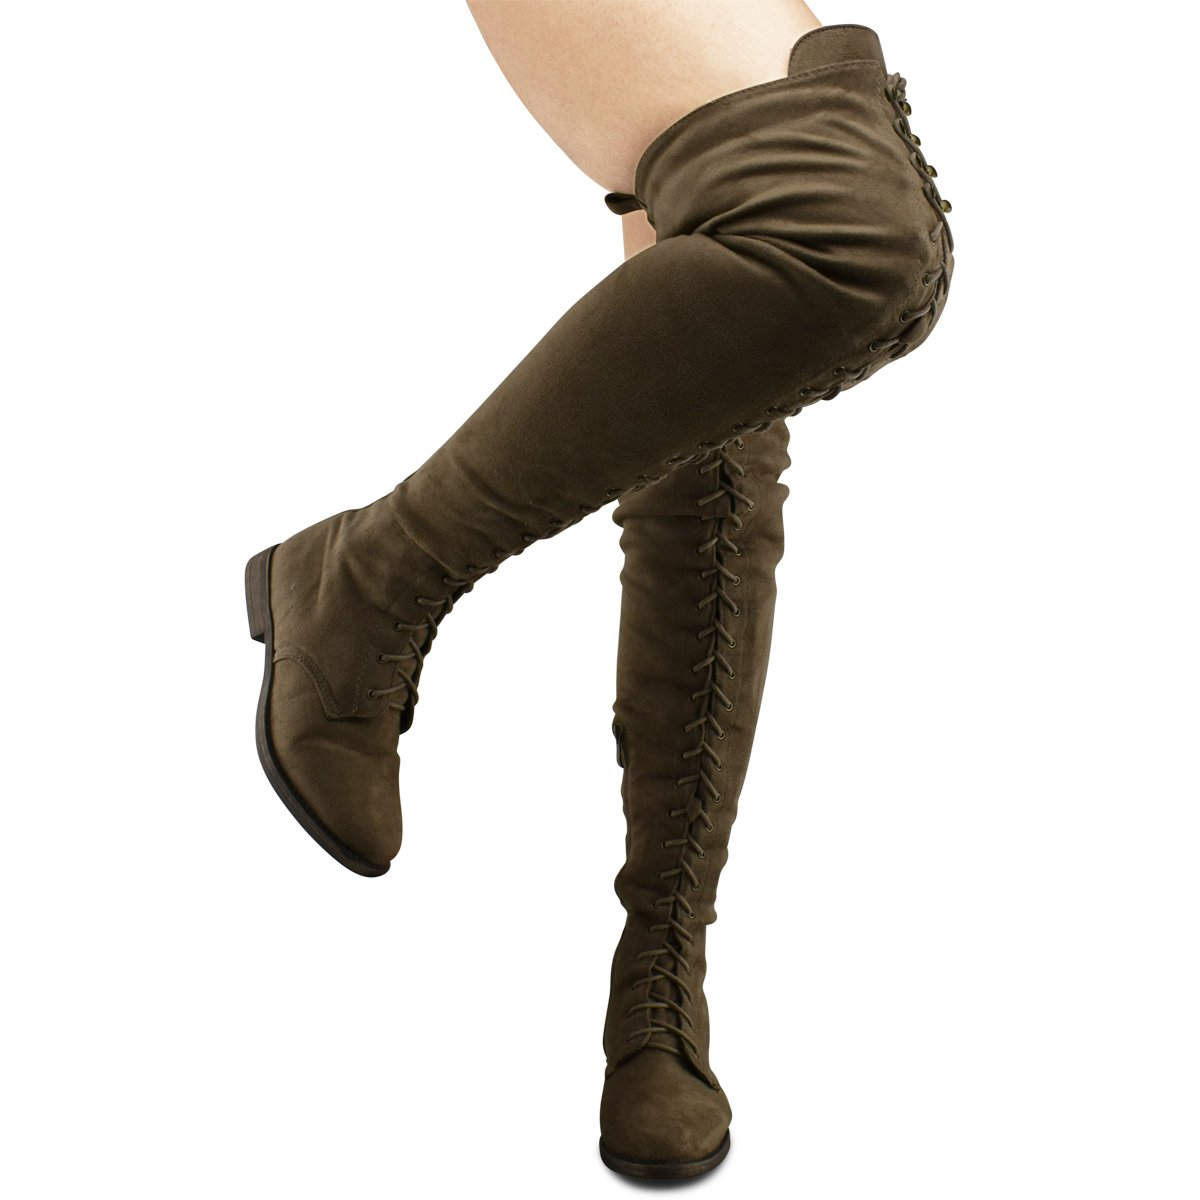 Premier Standard Women's Lace Thigh High Over The Knee Riding Boots - Side Zipper Comfy Vegan Suede B076H9NQLV 6 B(M) US|Premier Taupe